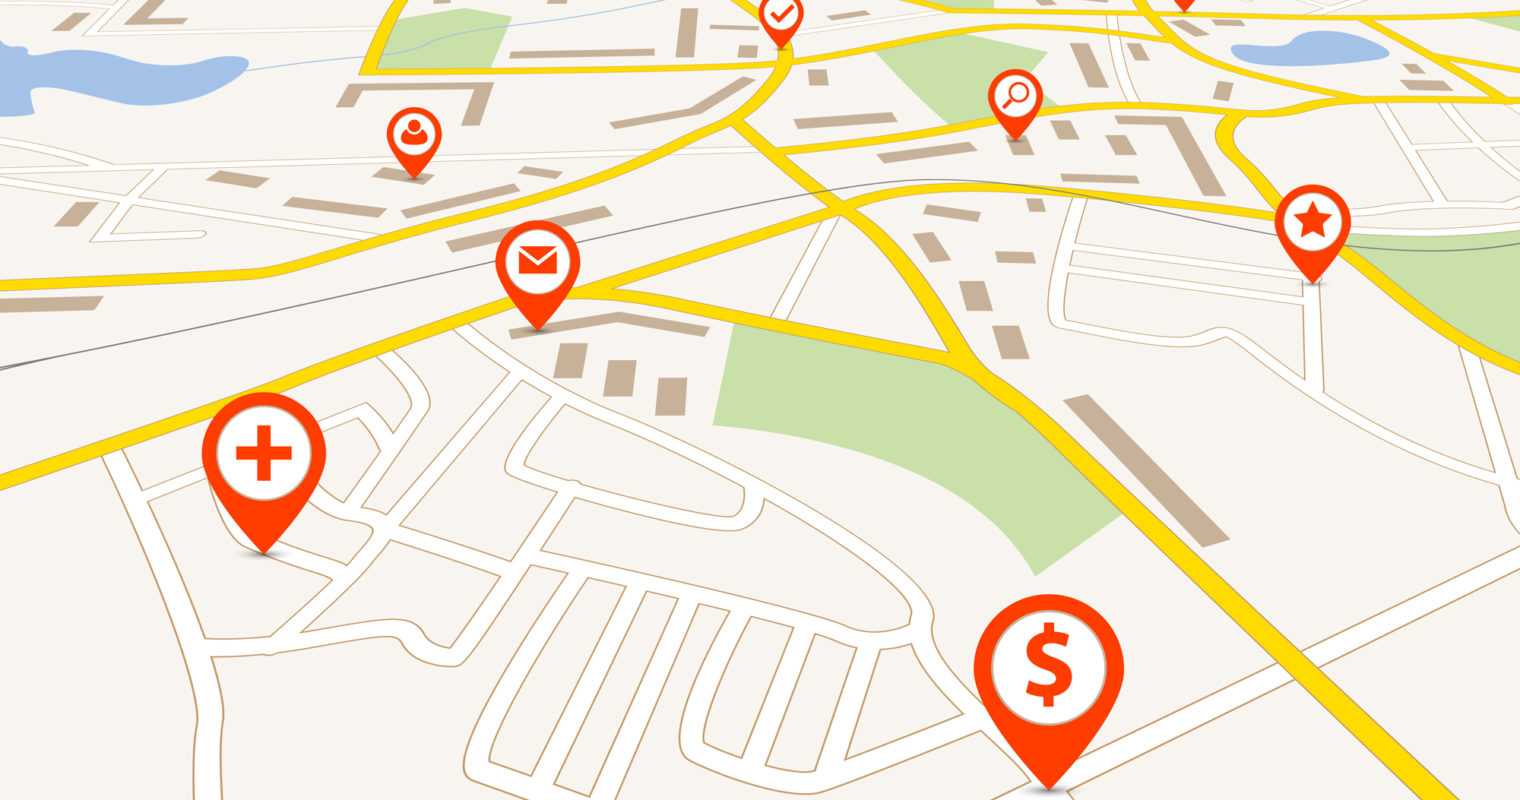 New Bing Maps Includes Improved Search, Discovery, and Travel Planning Features